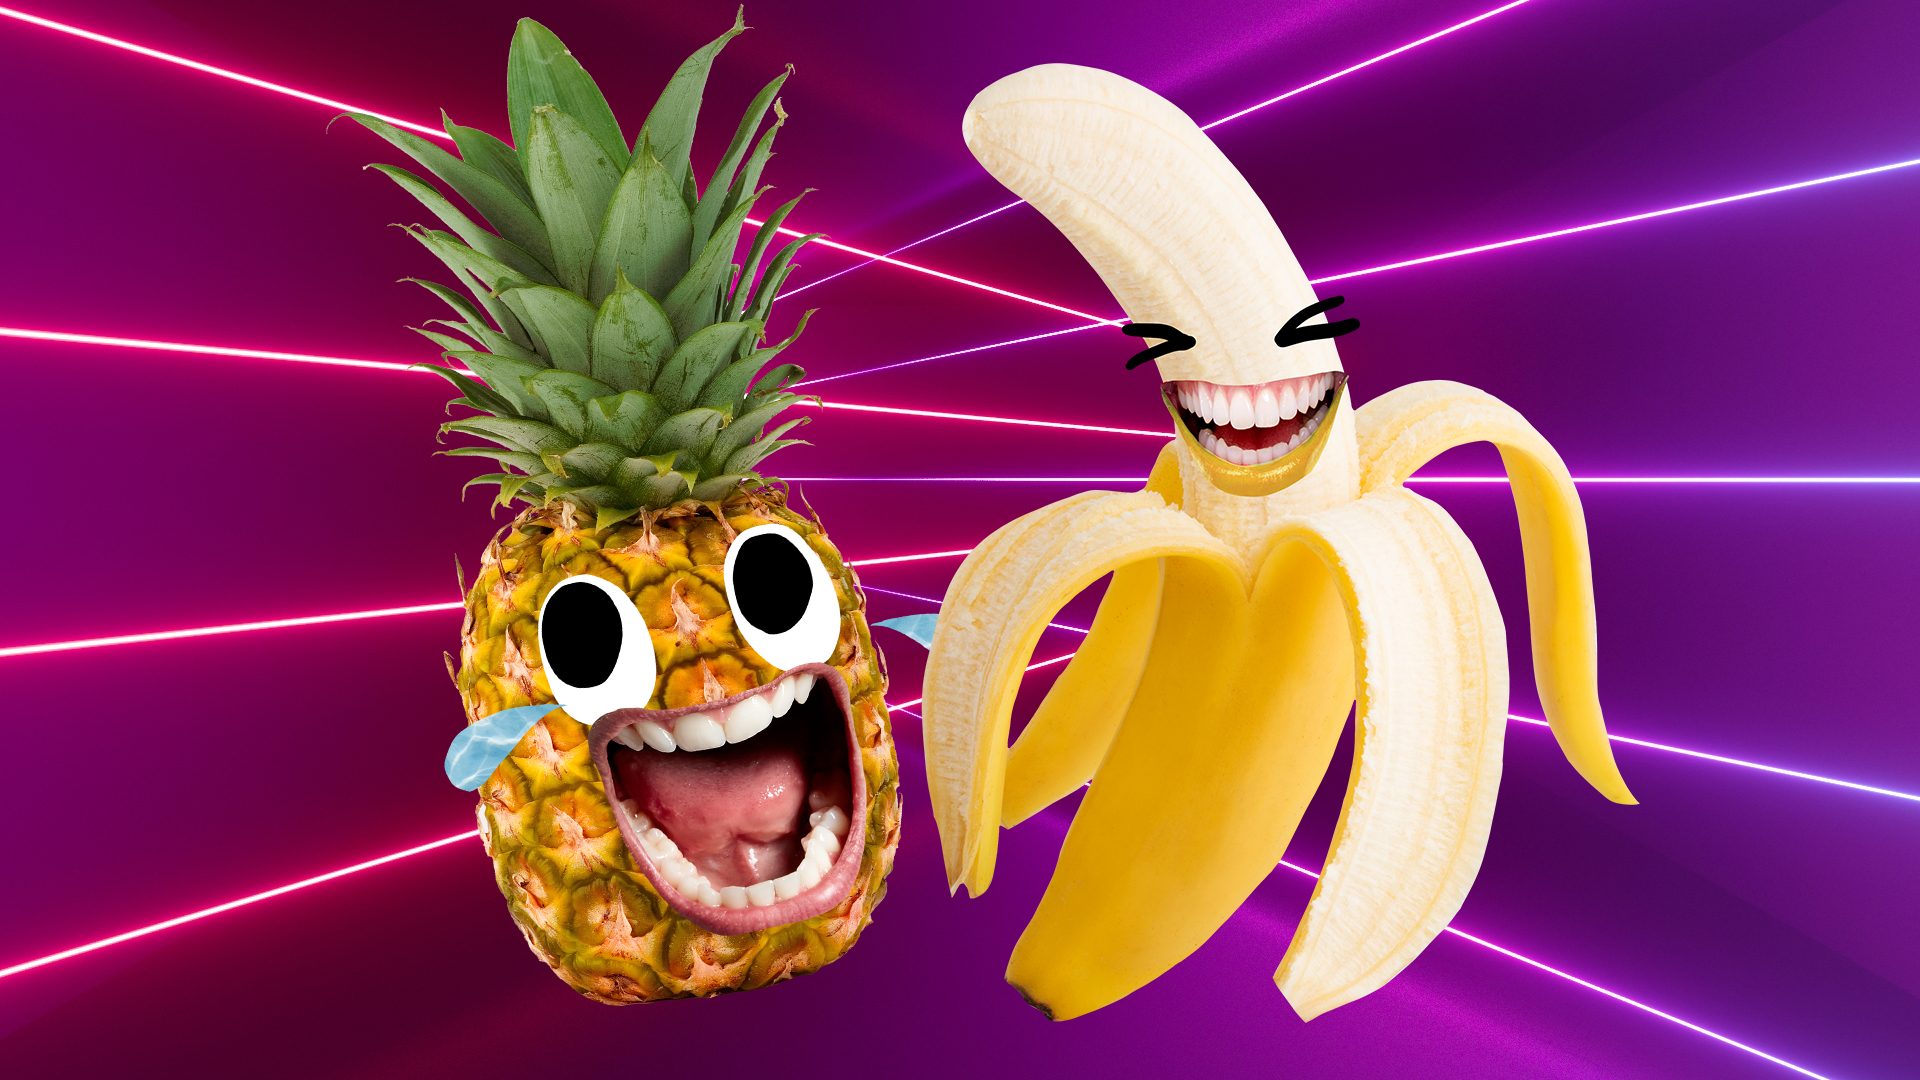 A cry laughing pineapple and and a laughing banana